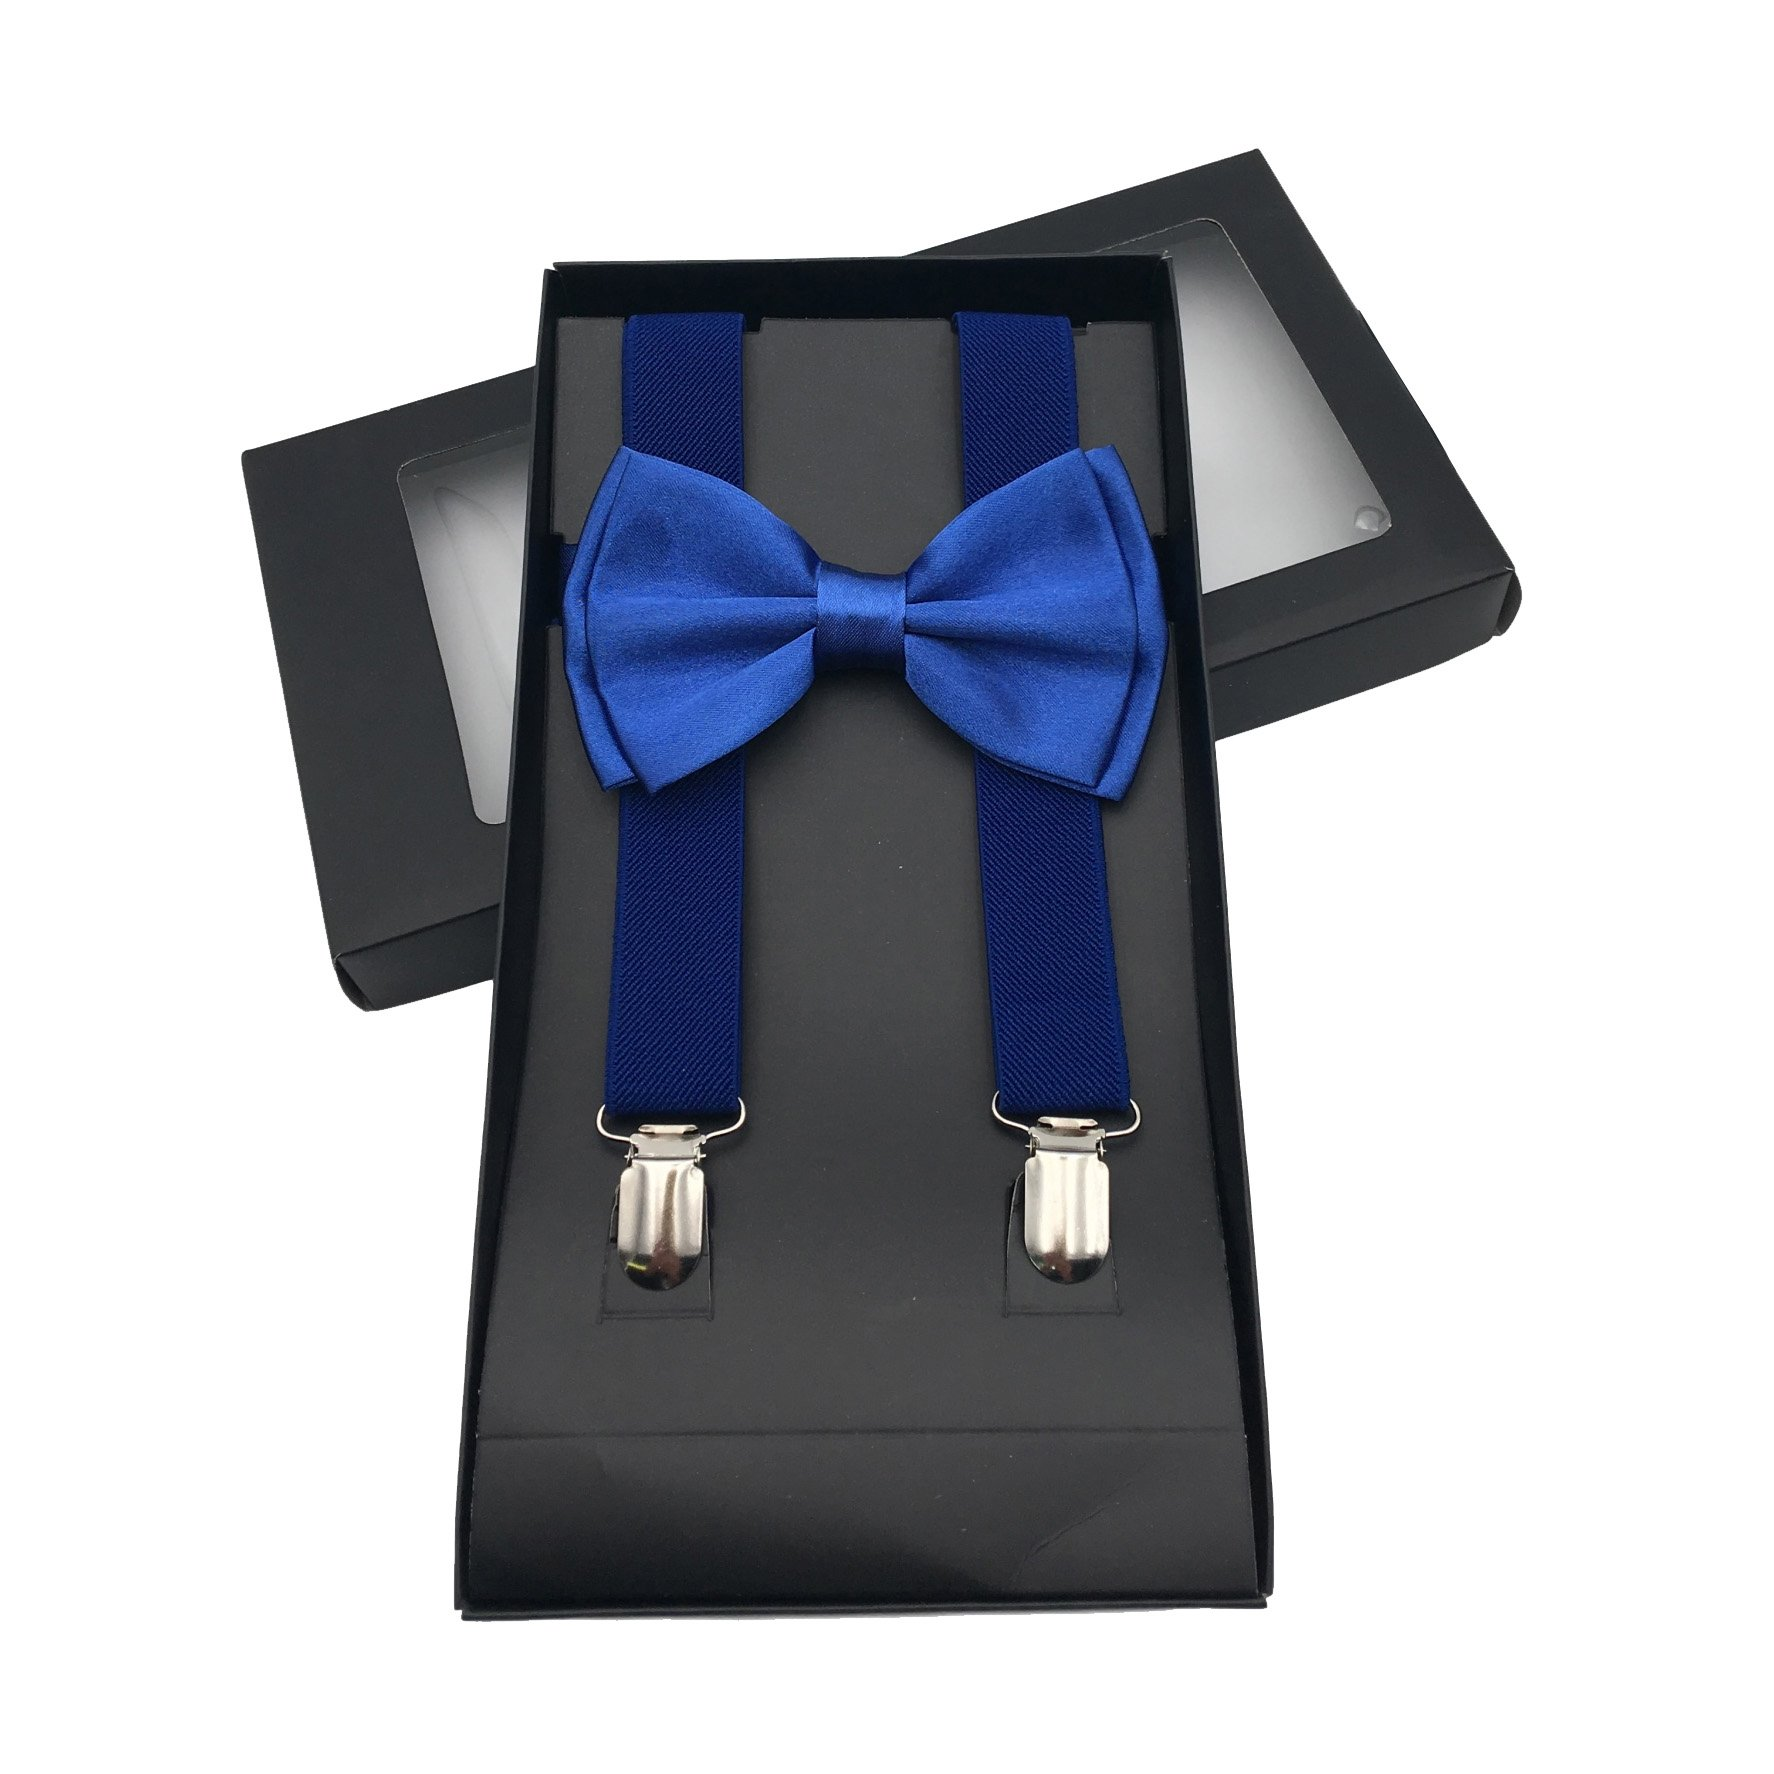 Y-Back Suspenders and Bow Tie Matching Set, Pre-Tied, Clip Design, Elastic, Adjustable Straps, Classic | Great for Weddings,Parties,Graduations, Theme Party | Nice&Unique Gifts for Men (Royal Blue)